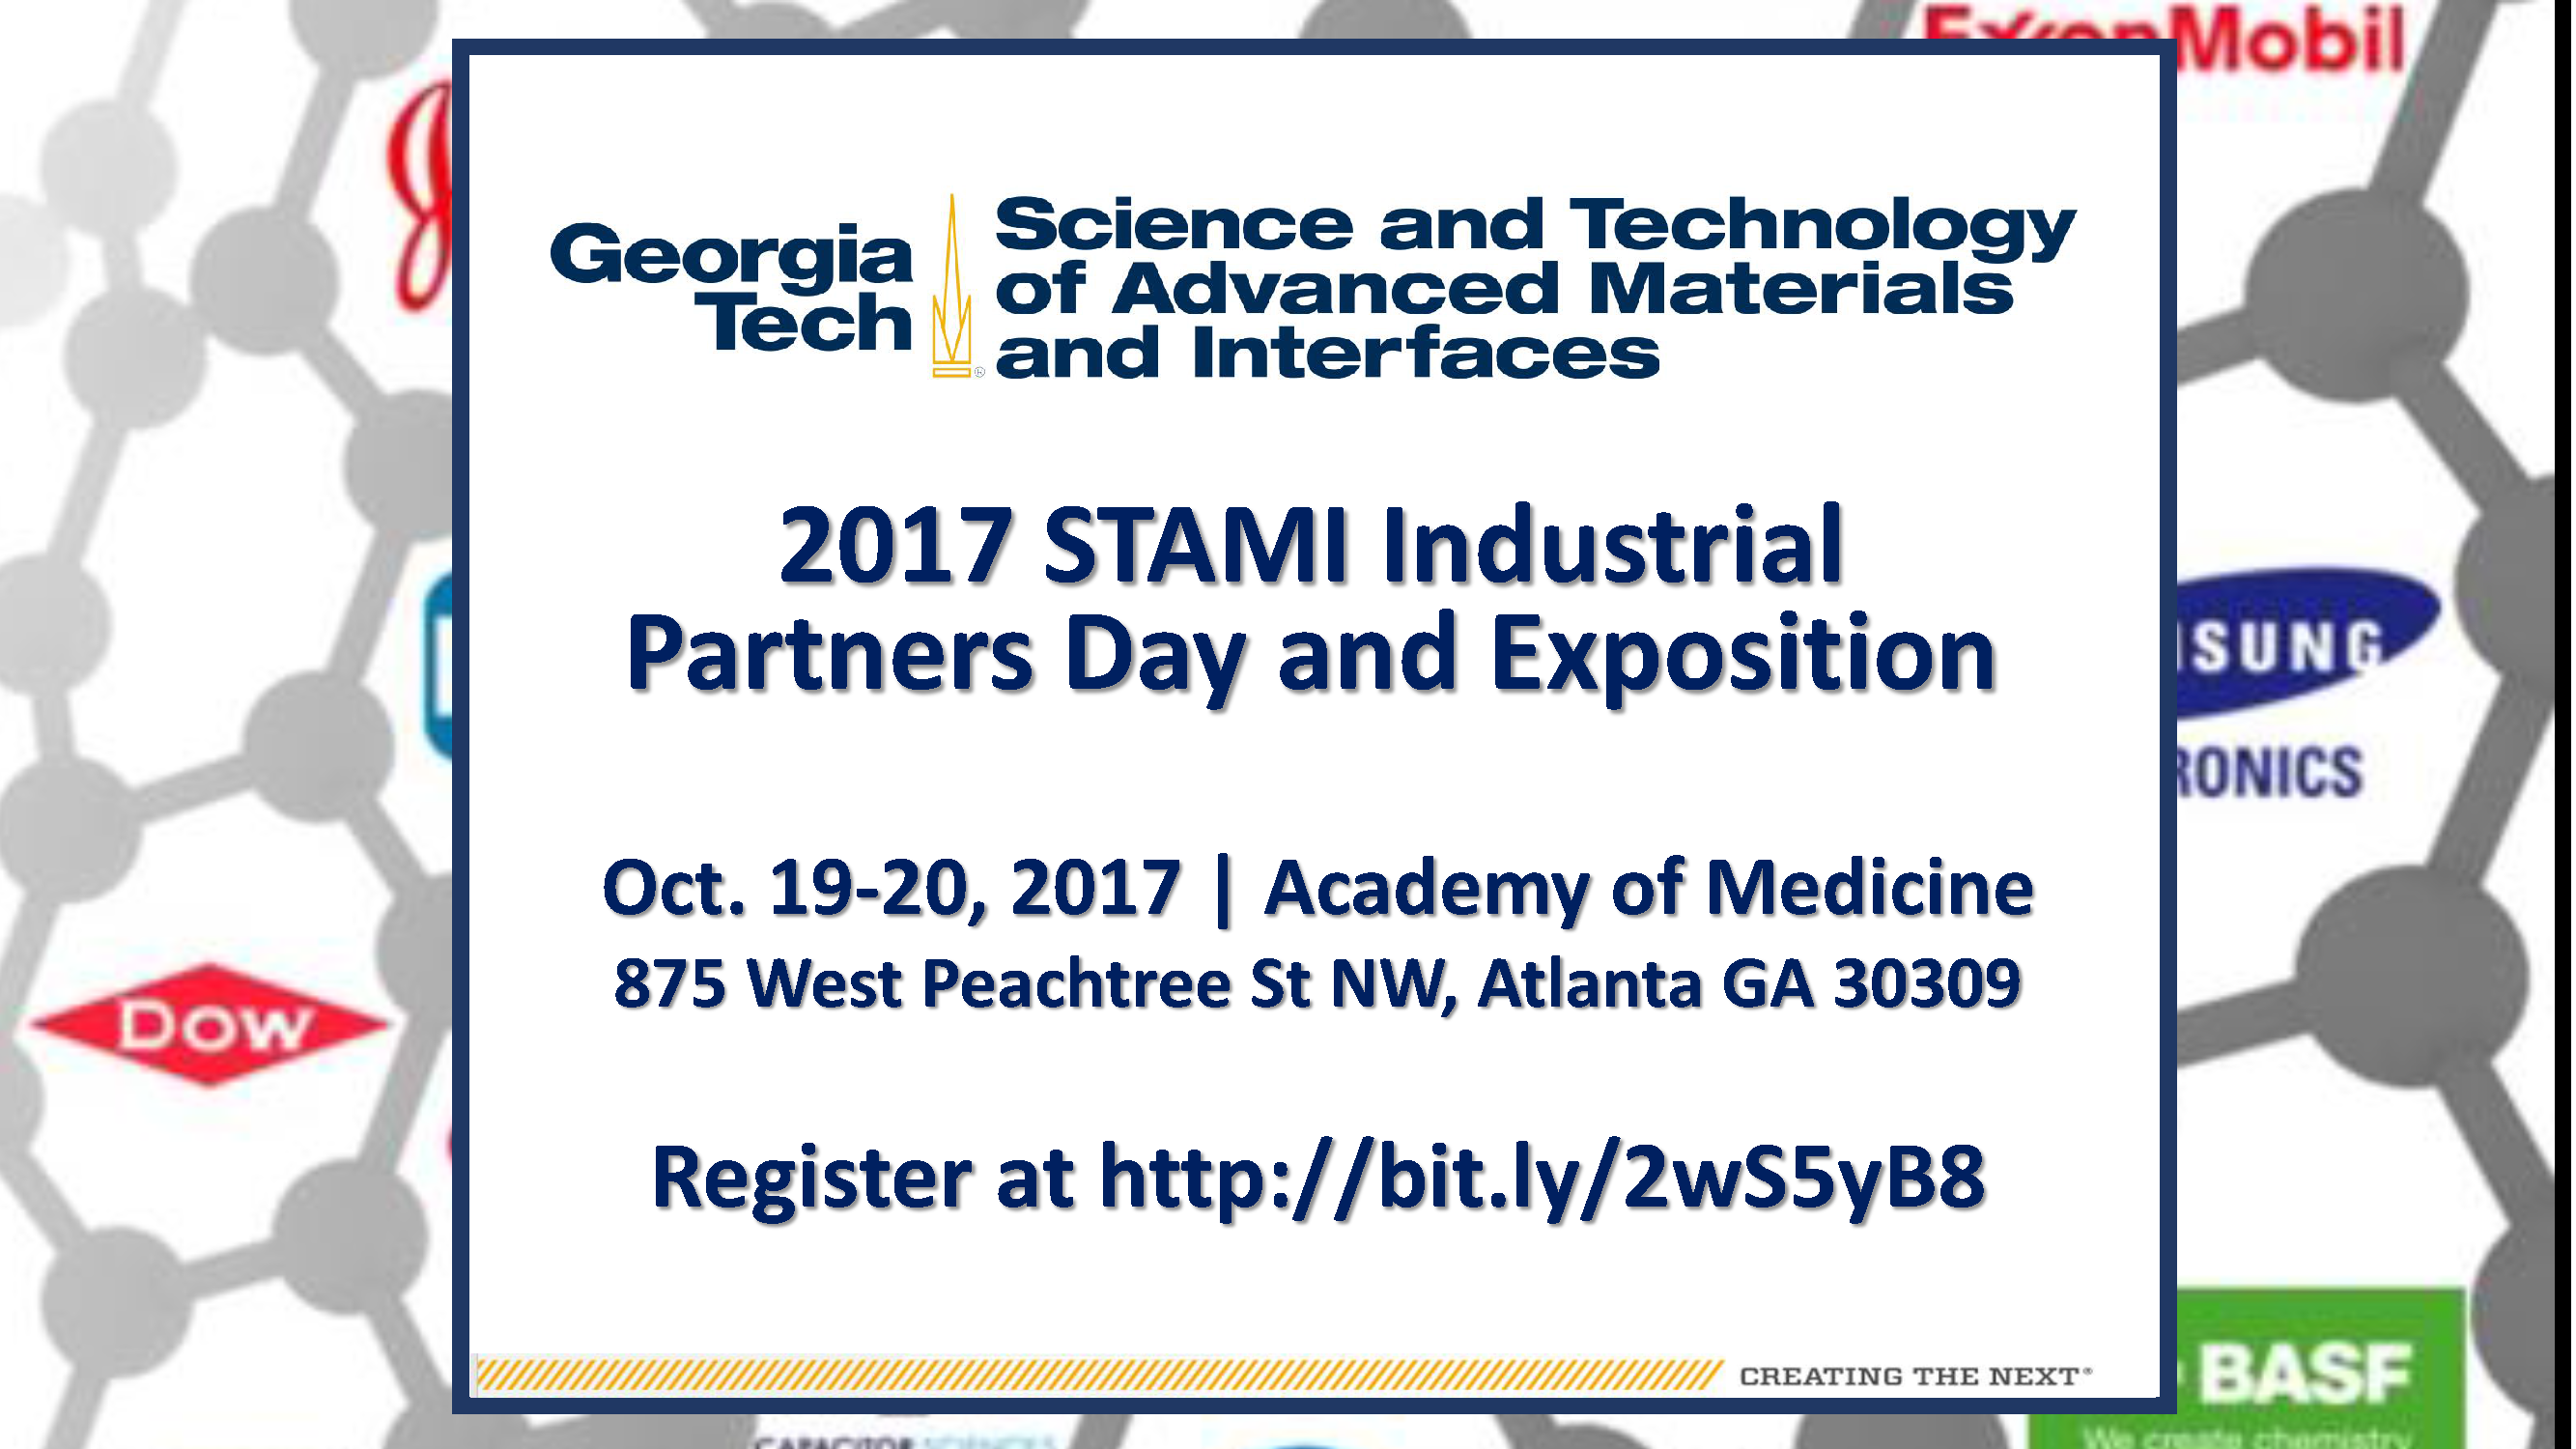 2017 STAMI Industrial Partners Day and Exposition